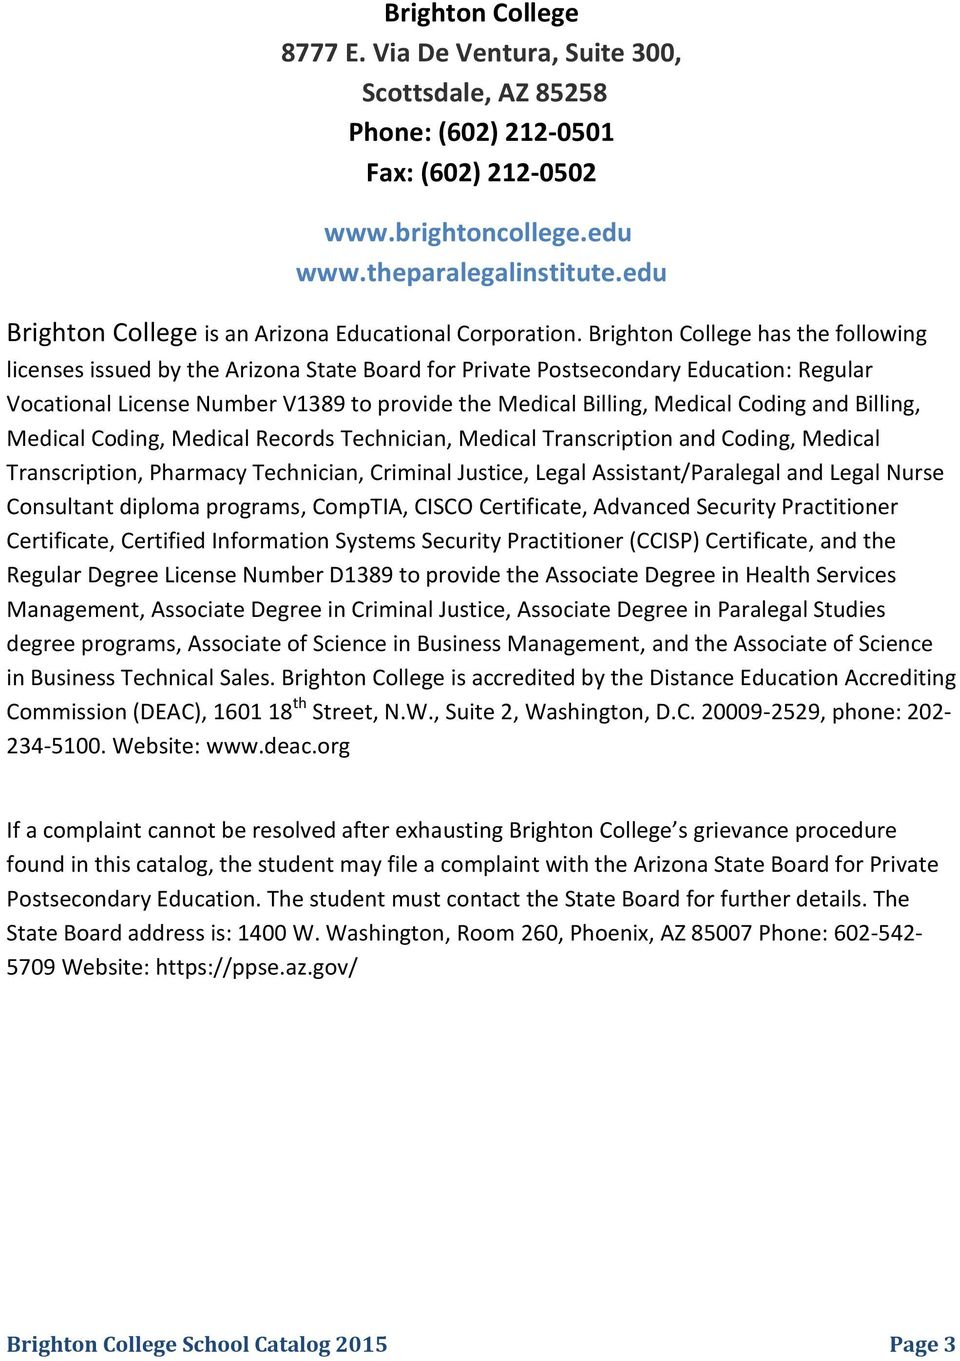 Brighton College has the following licenses issued by the Arizona State Board for Private Postsecondary Education: Regular Vocational License Number V1389 to provide the Medical Billing, Medical